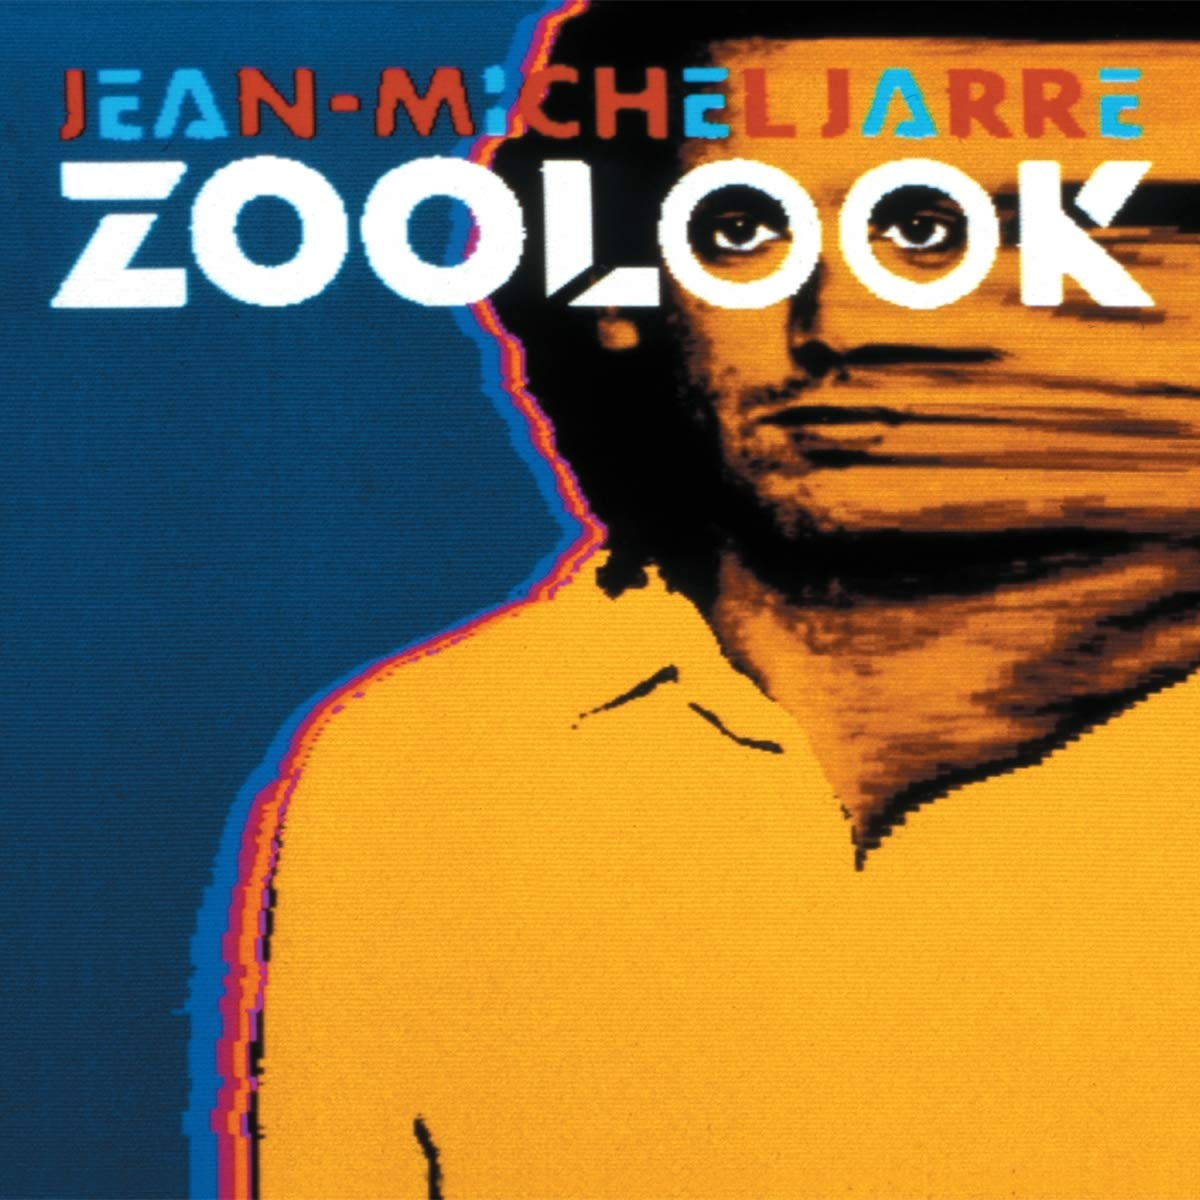 Vinilo : Jean-Michel Jarre - Zoolook (United Kingdom - Import)